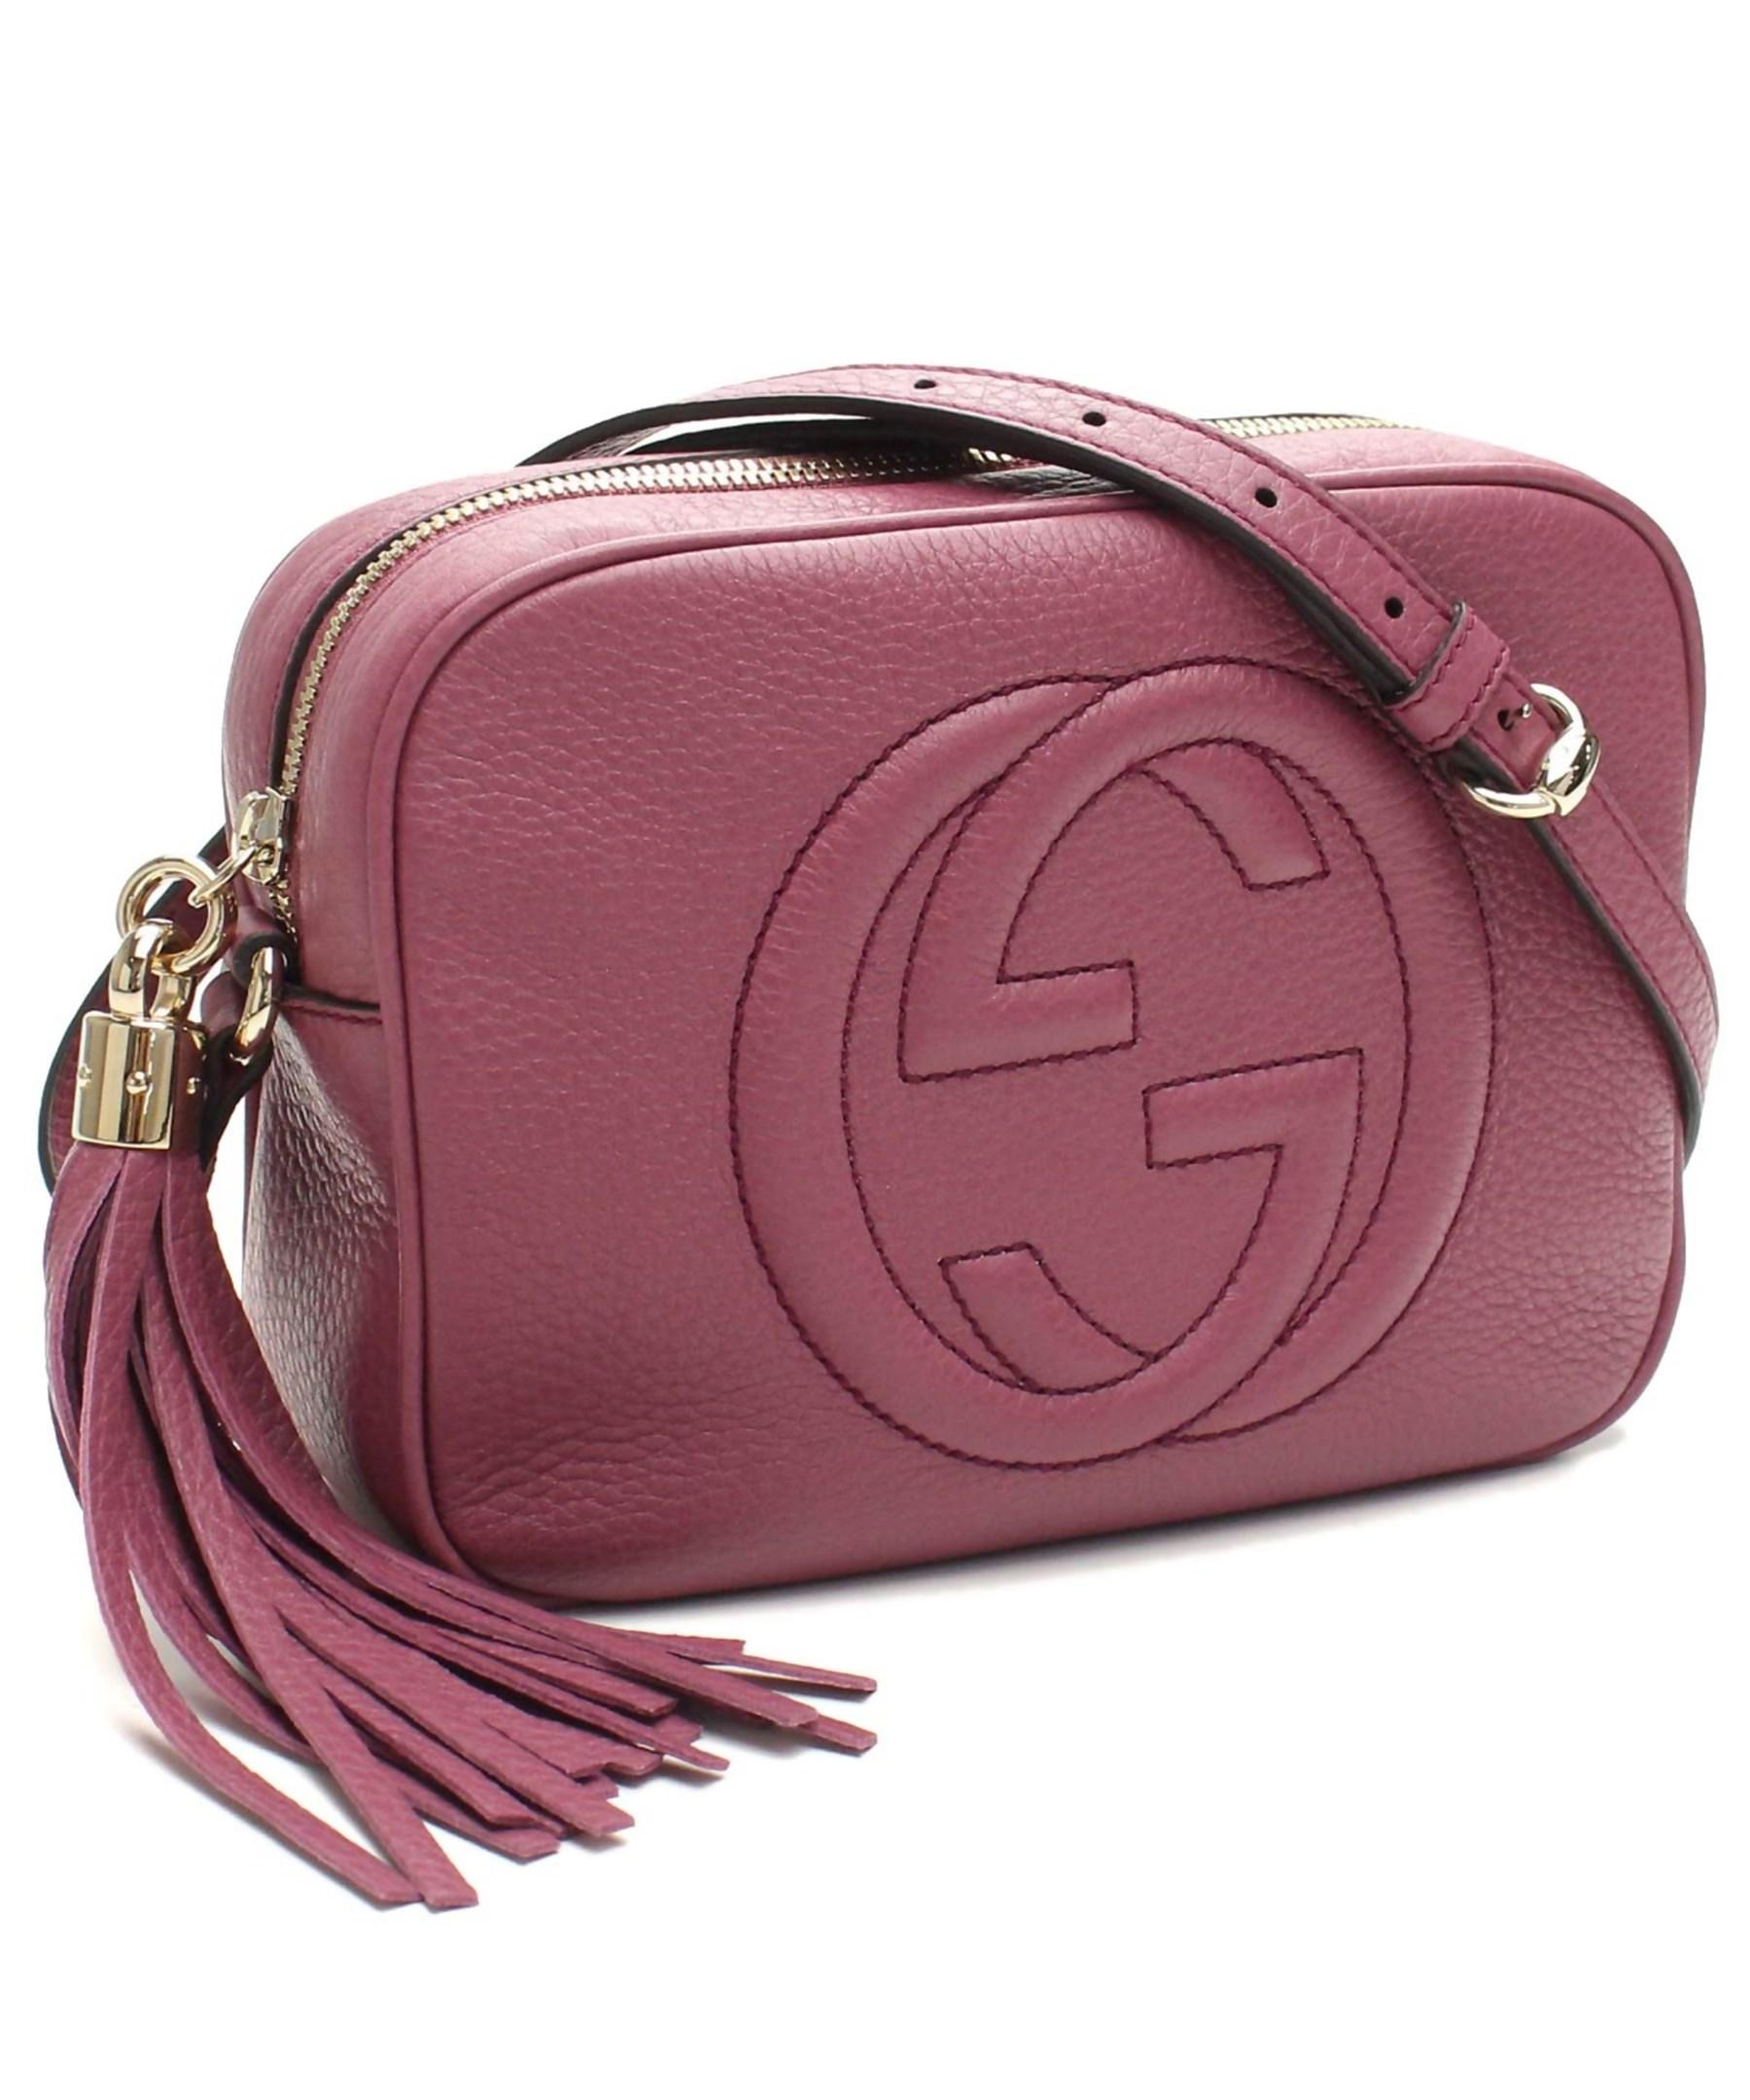 Gucci Soho Leather Disco Bag Dusty Rose in Pink | Lyst